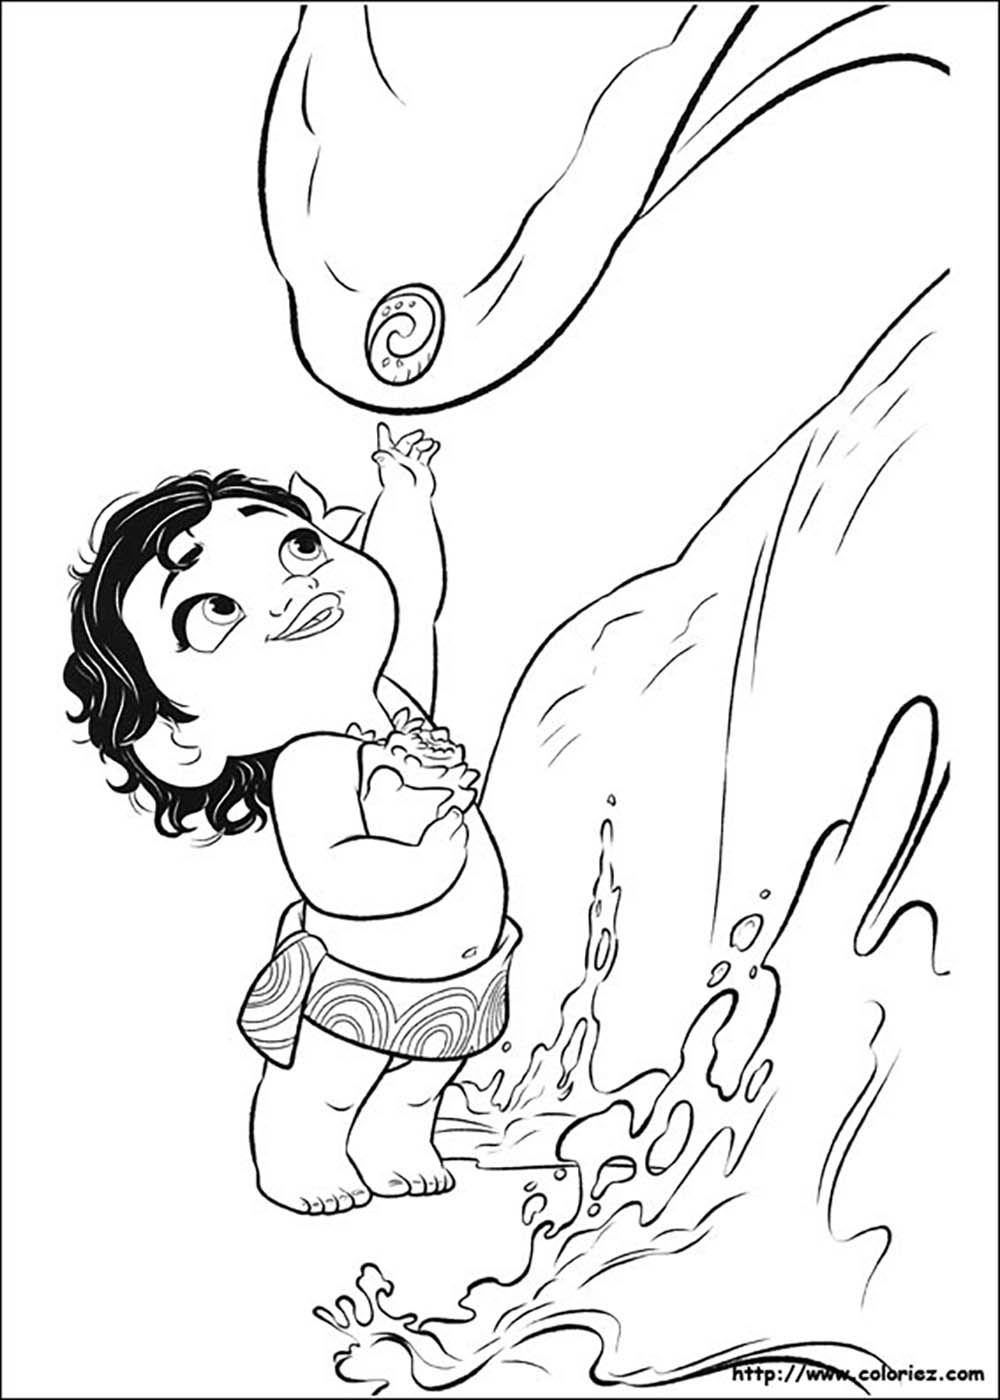 Moana Coloring Page To Print And Color Little Moana